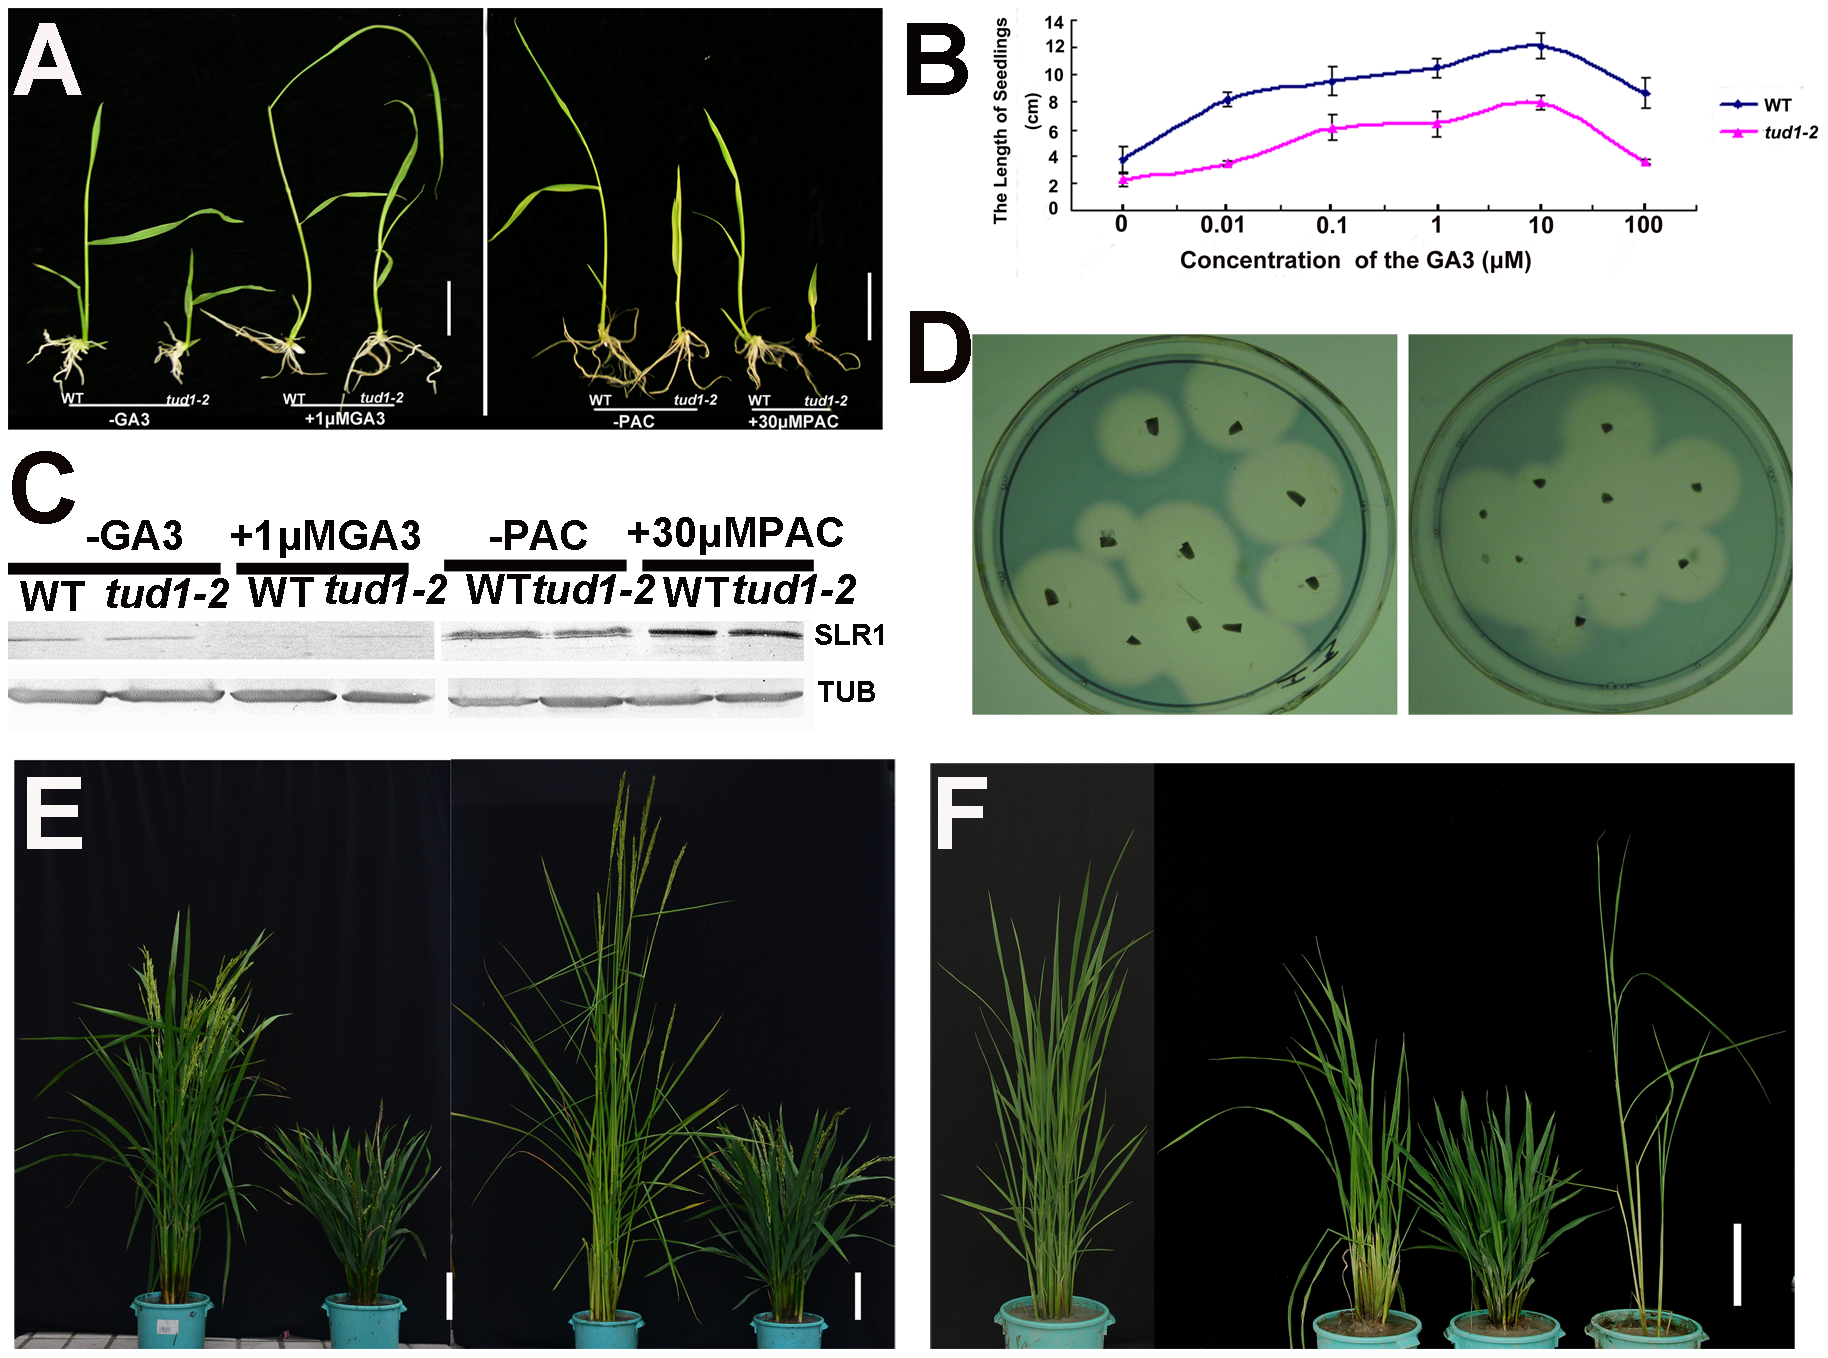 <i>tud1-2</i> is unlikely a GA-related mutant.